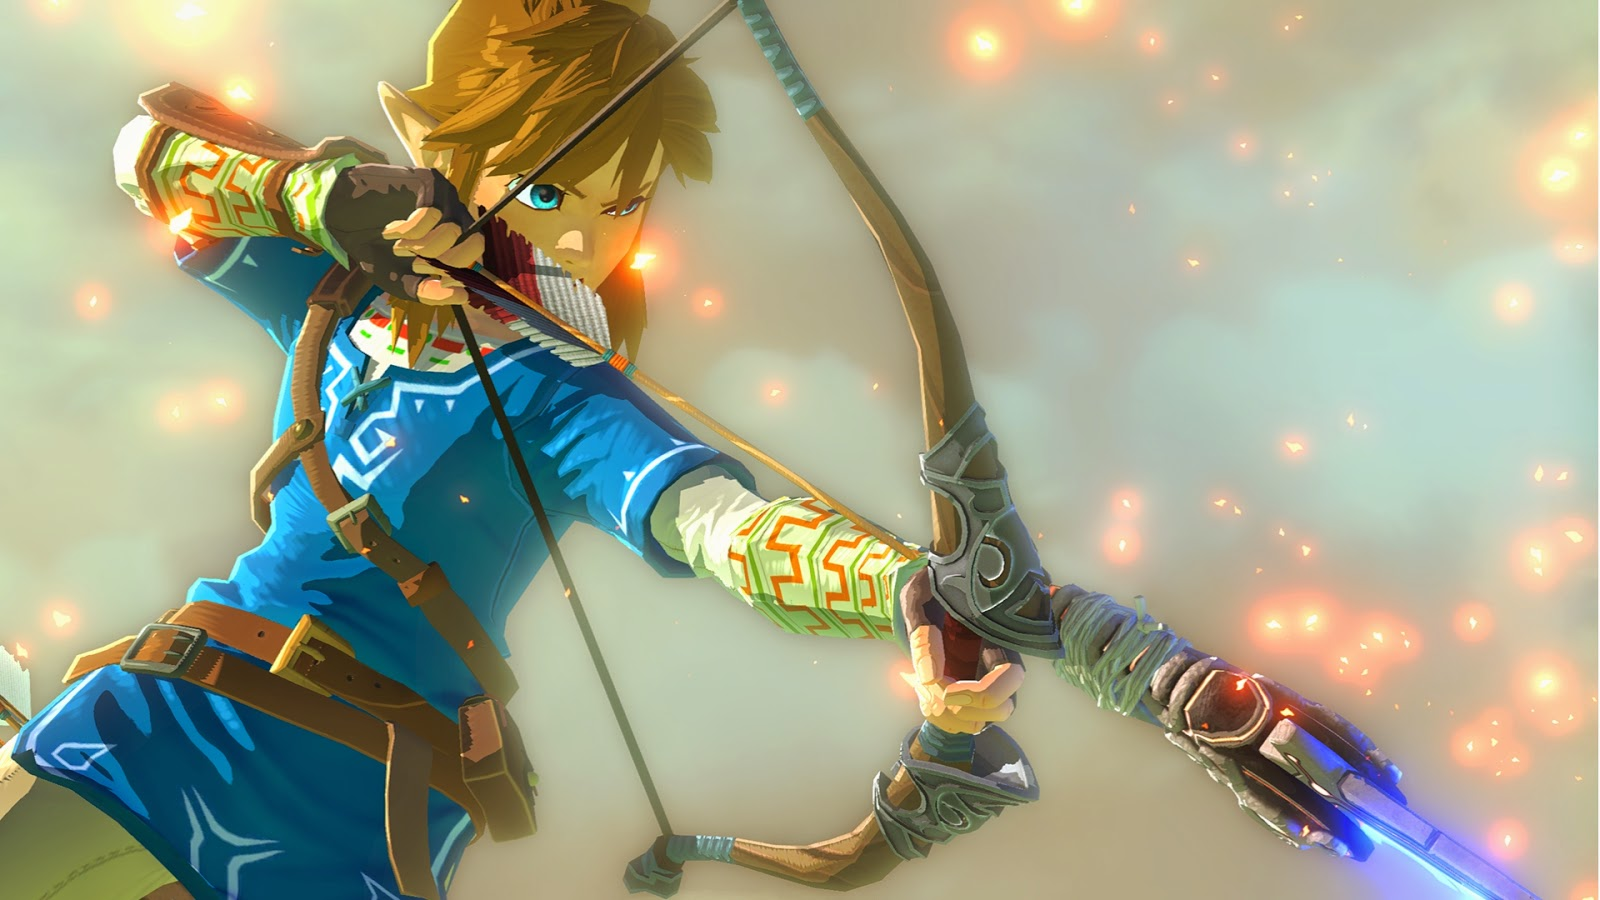 E3 2014 Press Conference Round Up: Nintendo - weknowgamers